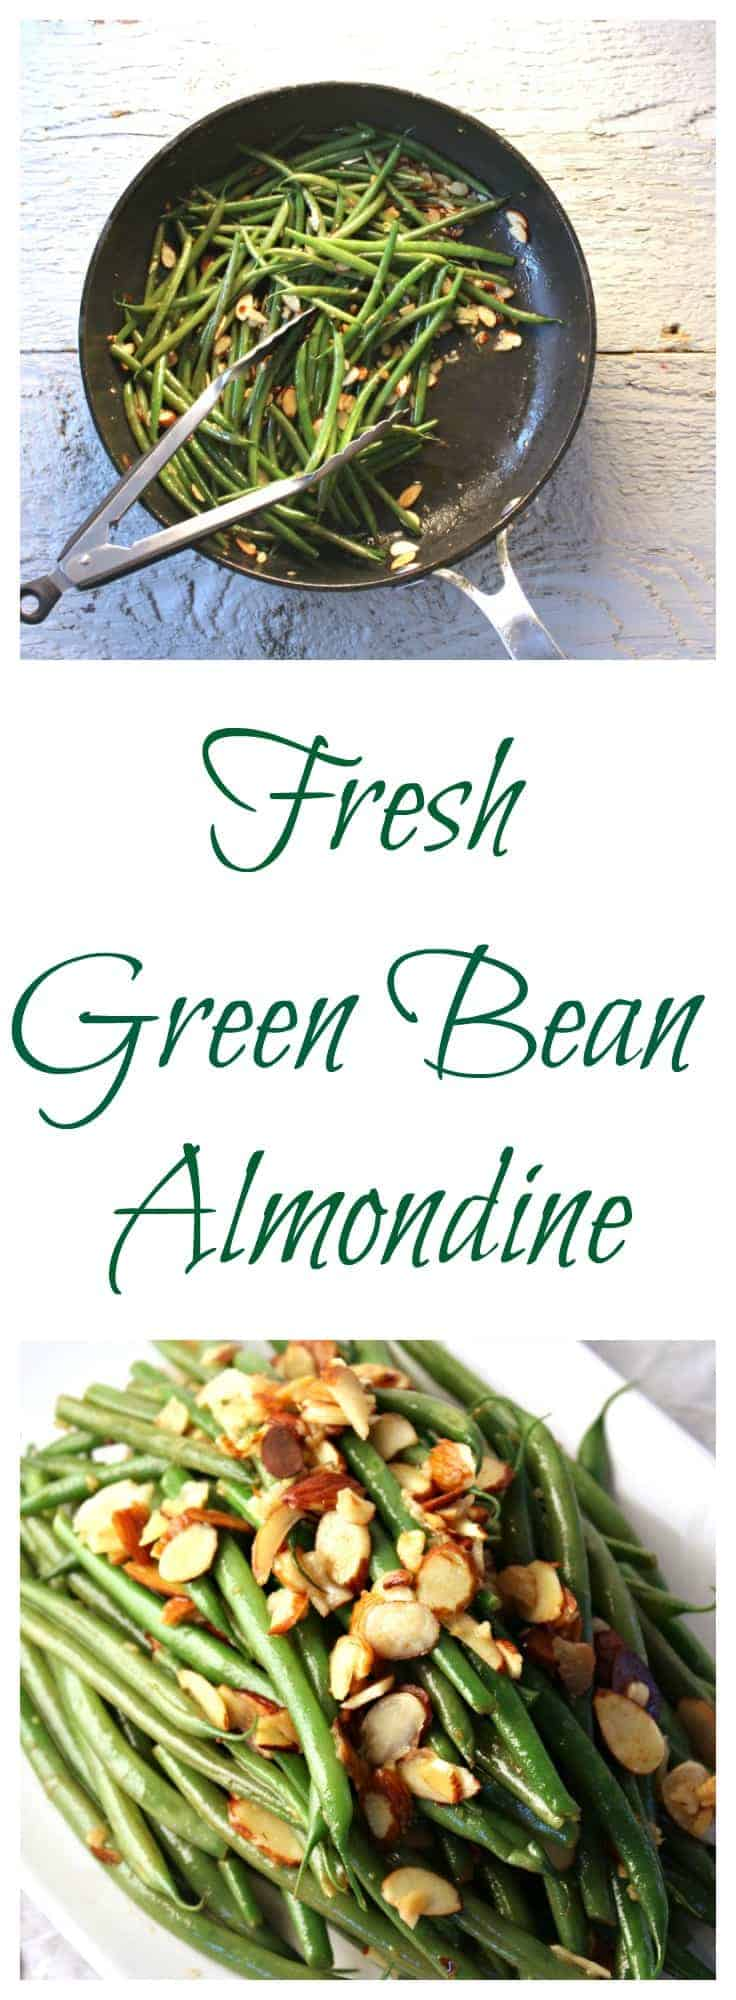 Fresh green beans make a perfect side dish in this green bean almondine recipe. #greenbeans #holidays #vegetable #greenbeanswithalmonds